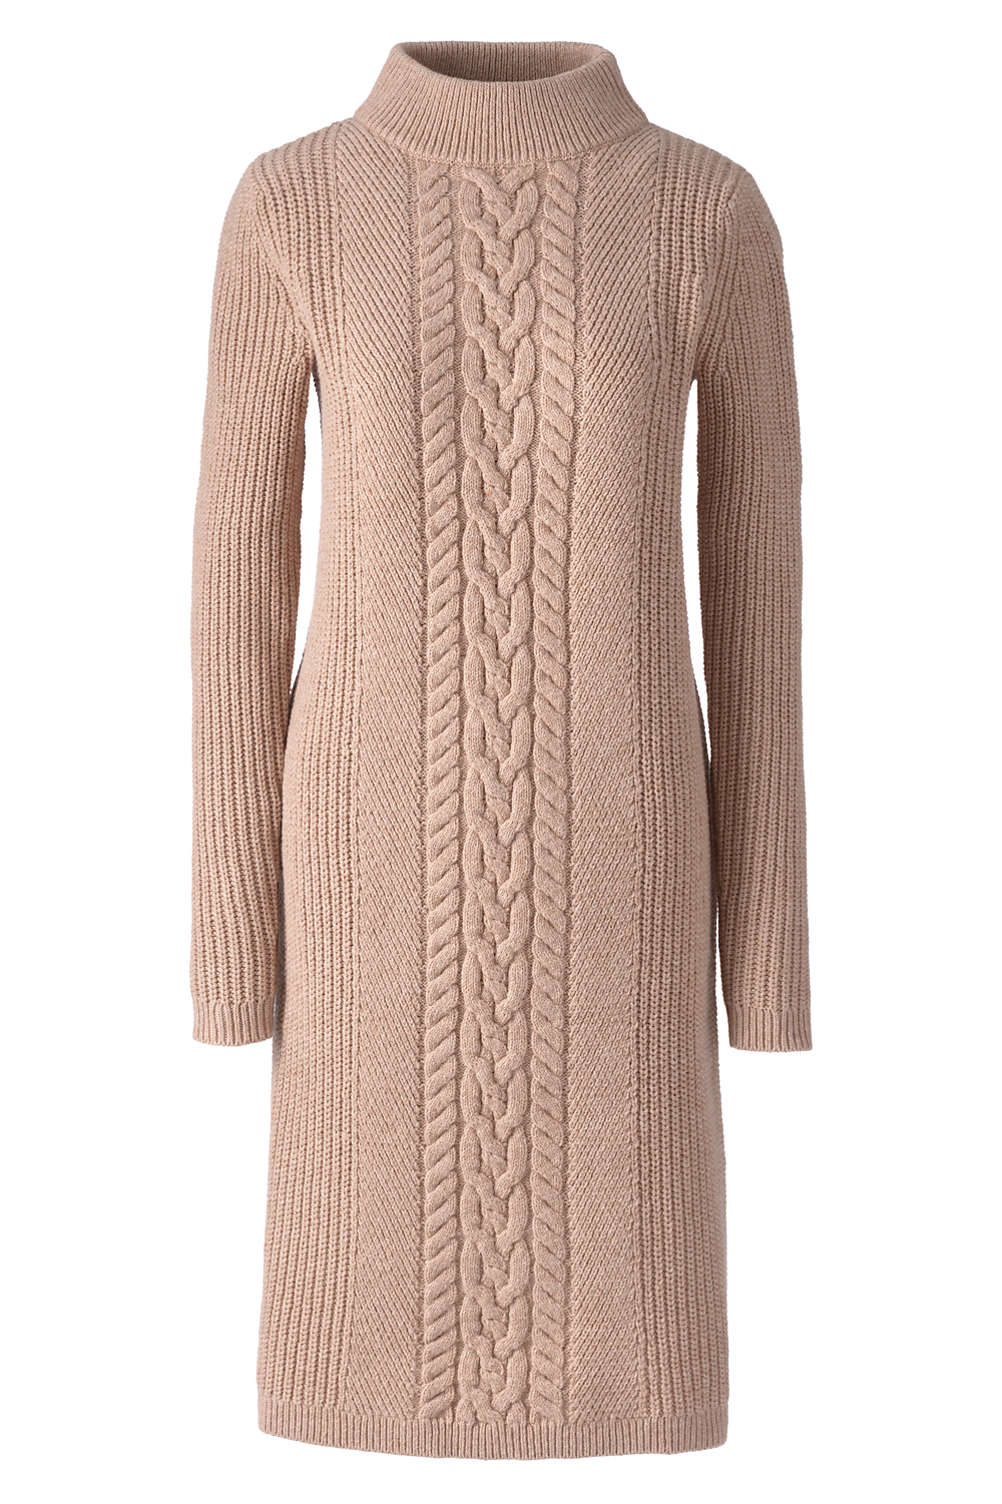 a6121fe163 Women s Plus Size Long Sleeve Mock Neck Cable Sweater Dress from Lands  End